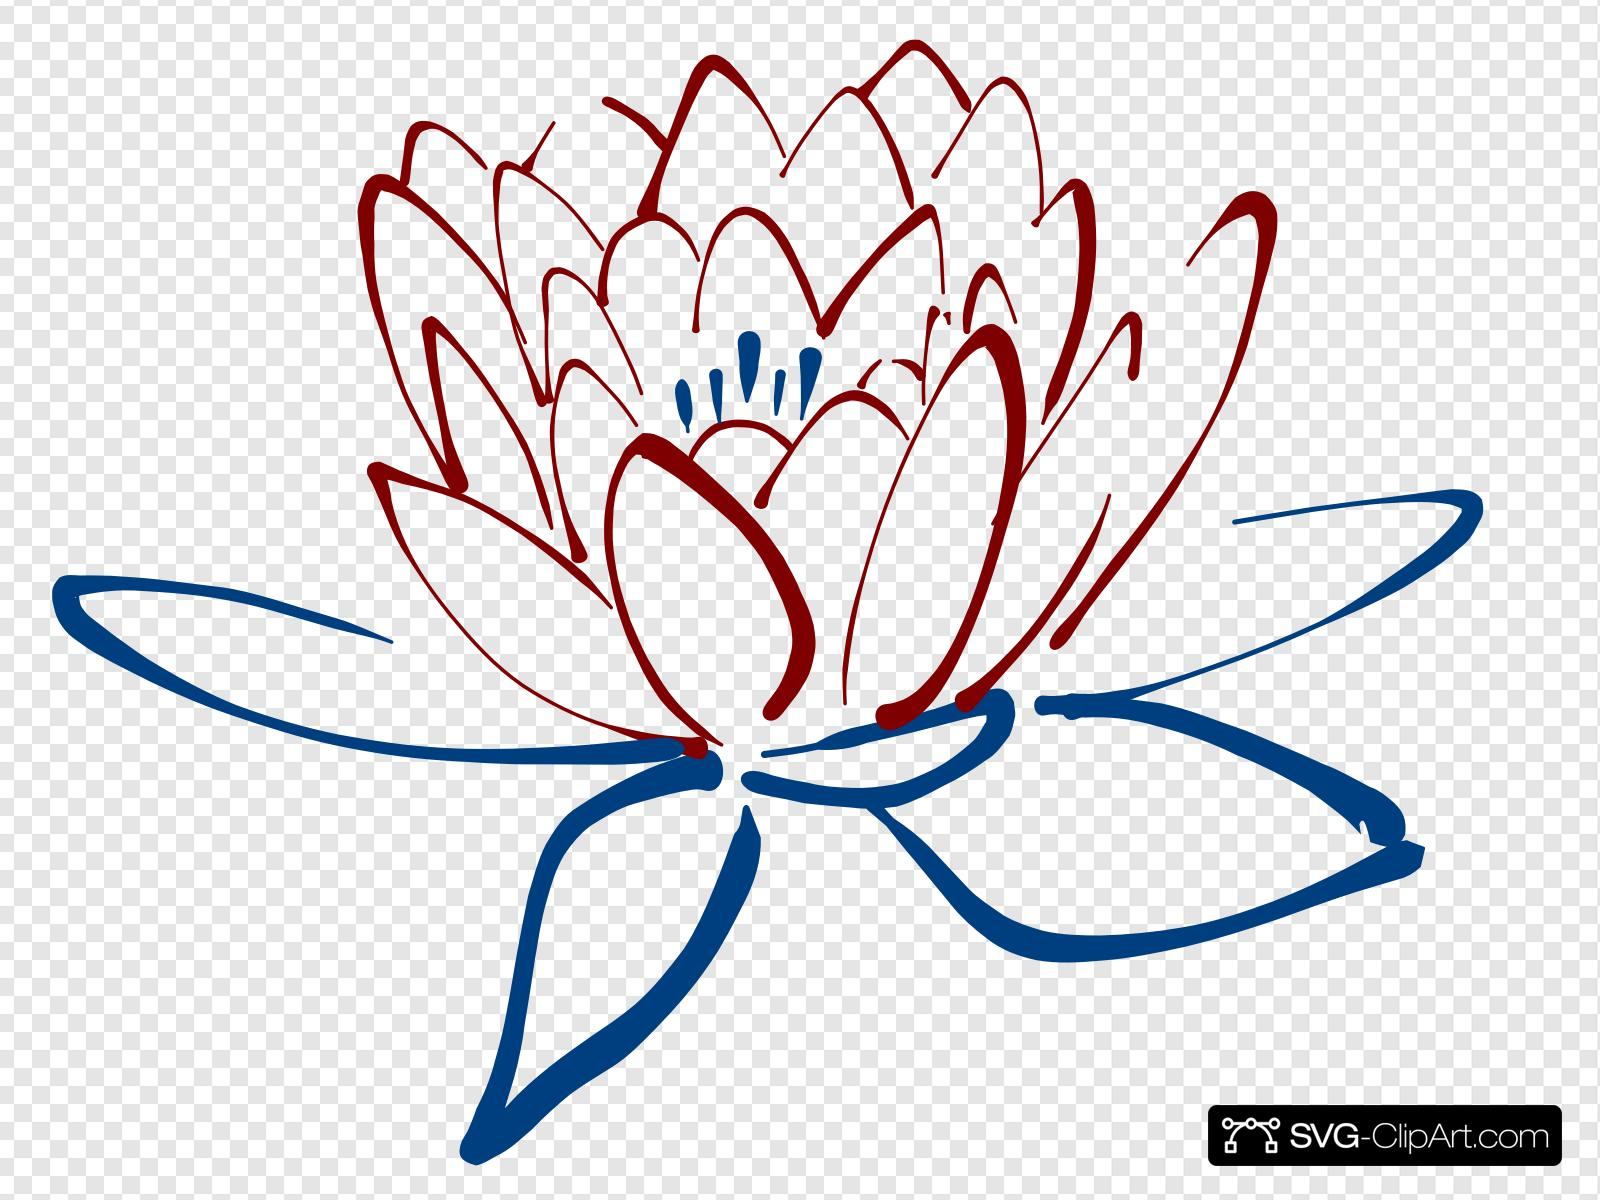 Ugt clipart jpg royalty free stock Red Blue Lotus Clip art, Icon and SVG - SVG Clipart jpg royalty free stock